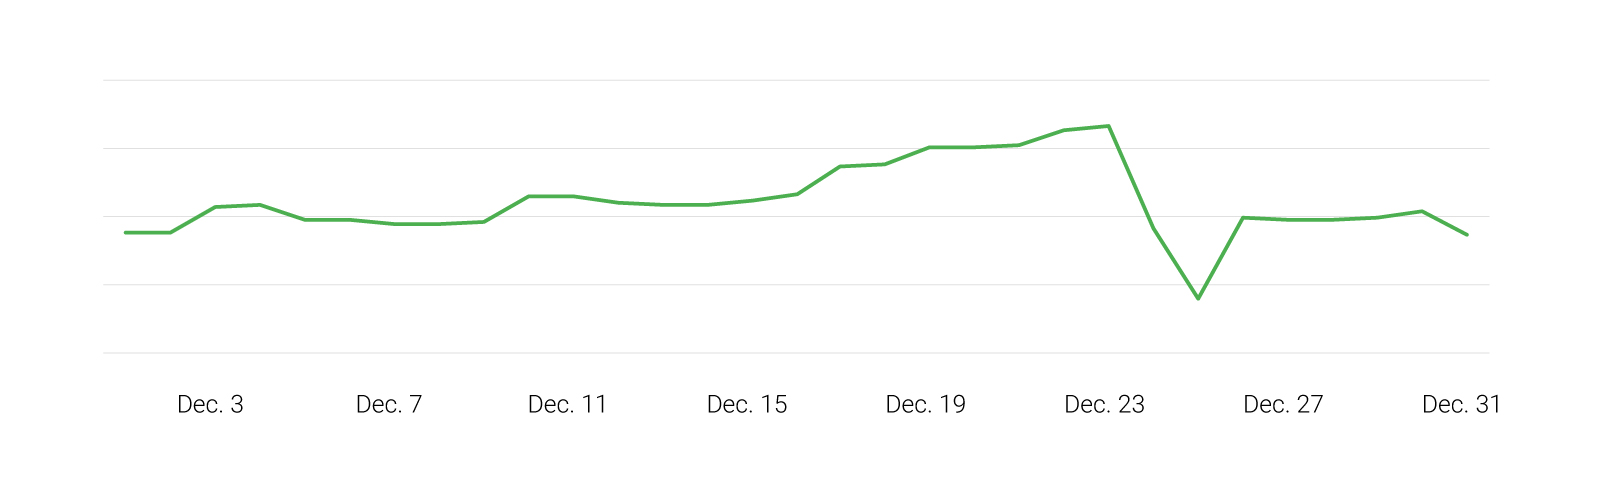 "A line graph showing a steady increase in searches for ""where to buy"" leading up to Christmas, with a sharp decline on Dec. 25 and a resurgence on Dec. 26."